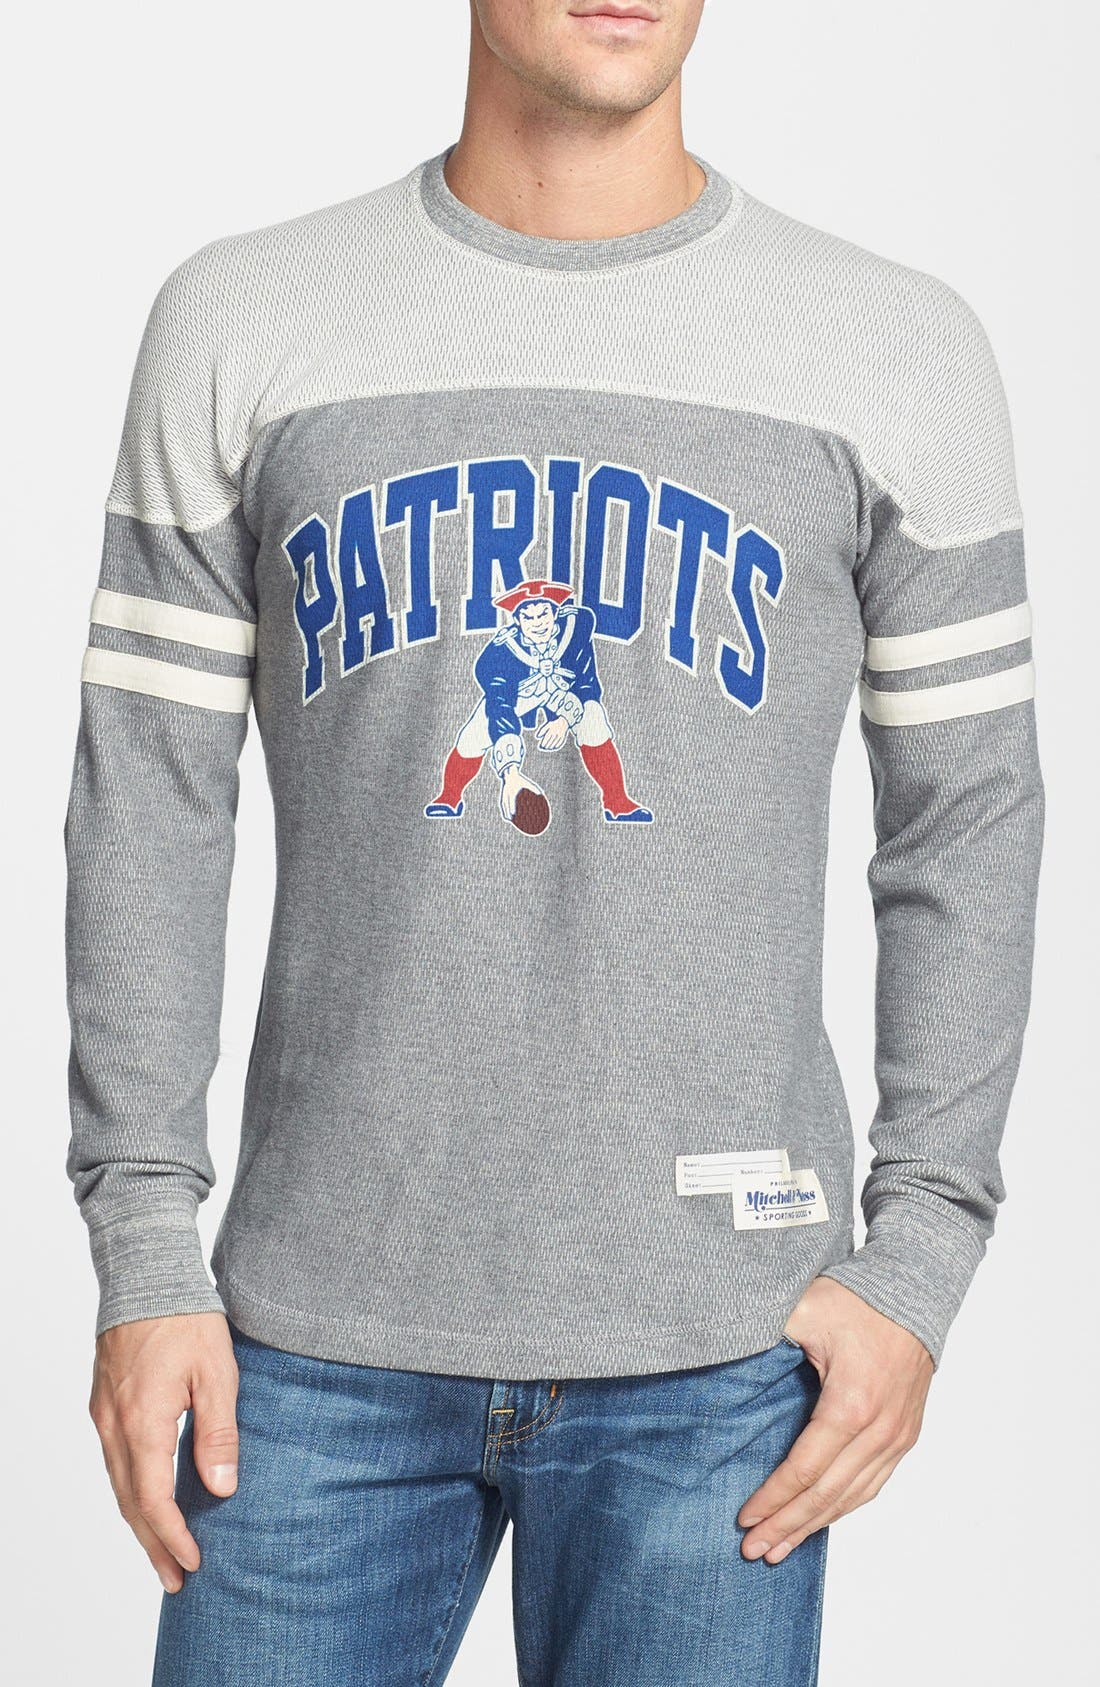 new england patriots thermal shirt